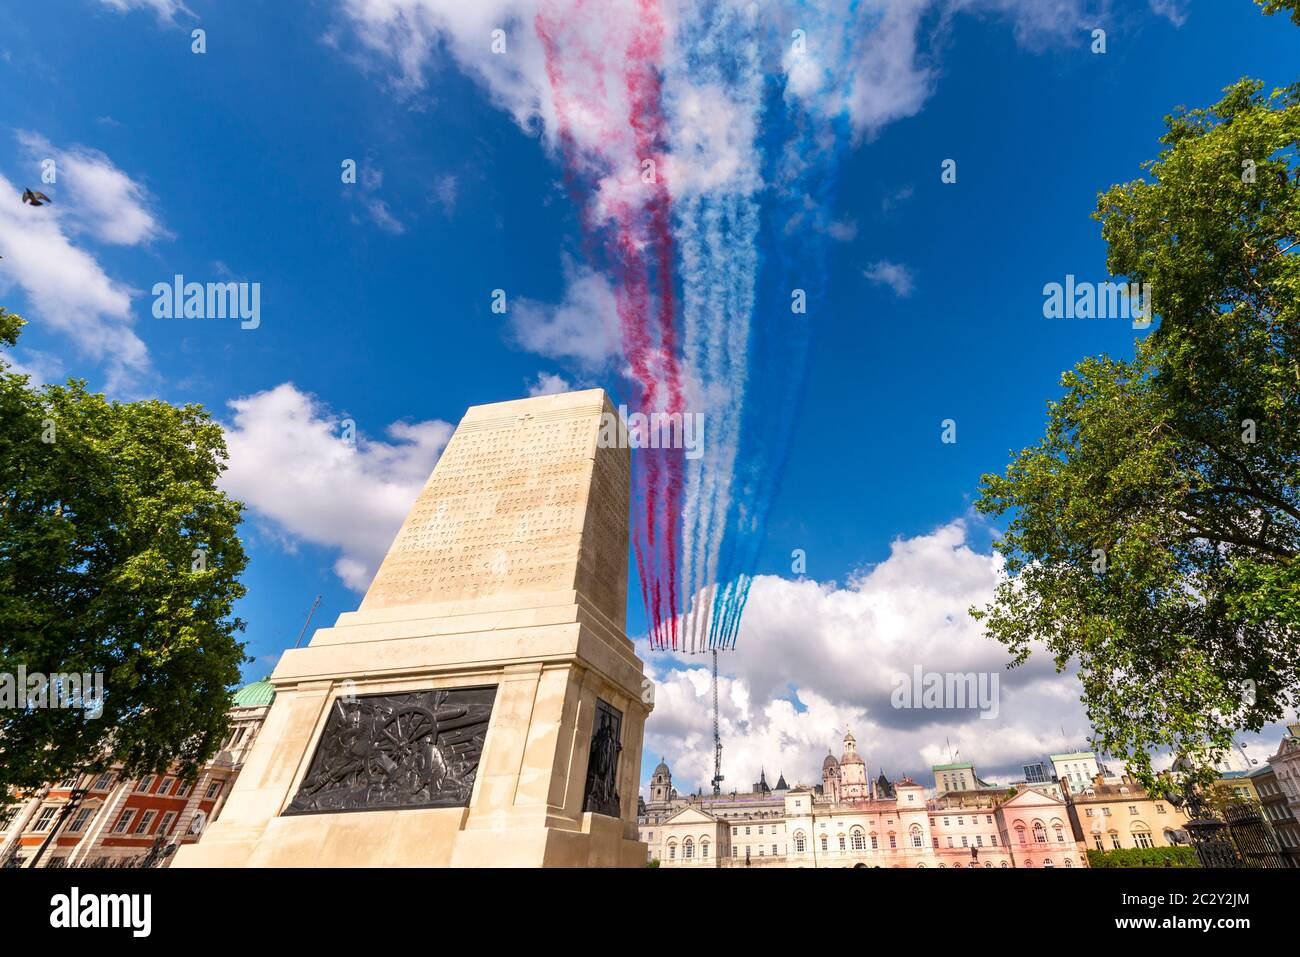 Westminster, London, UK. 18th Jun, 2020. The Royal Air Force Red Arrows and the French Air Force Patrouille de France display teams carried out a flypast over London to honour the 80th anniversary of the 'Appel' speech by Charles de Gaulle which is considered to be the origin of the French Resistance to the German occupation during World War II. The teams passed over Buckingham Palace, St. James's Park and Horse Guards Parade Stock Photo